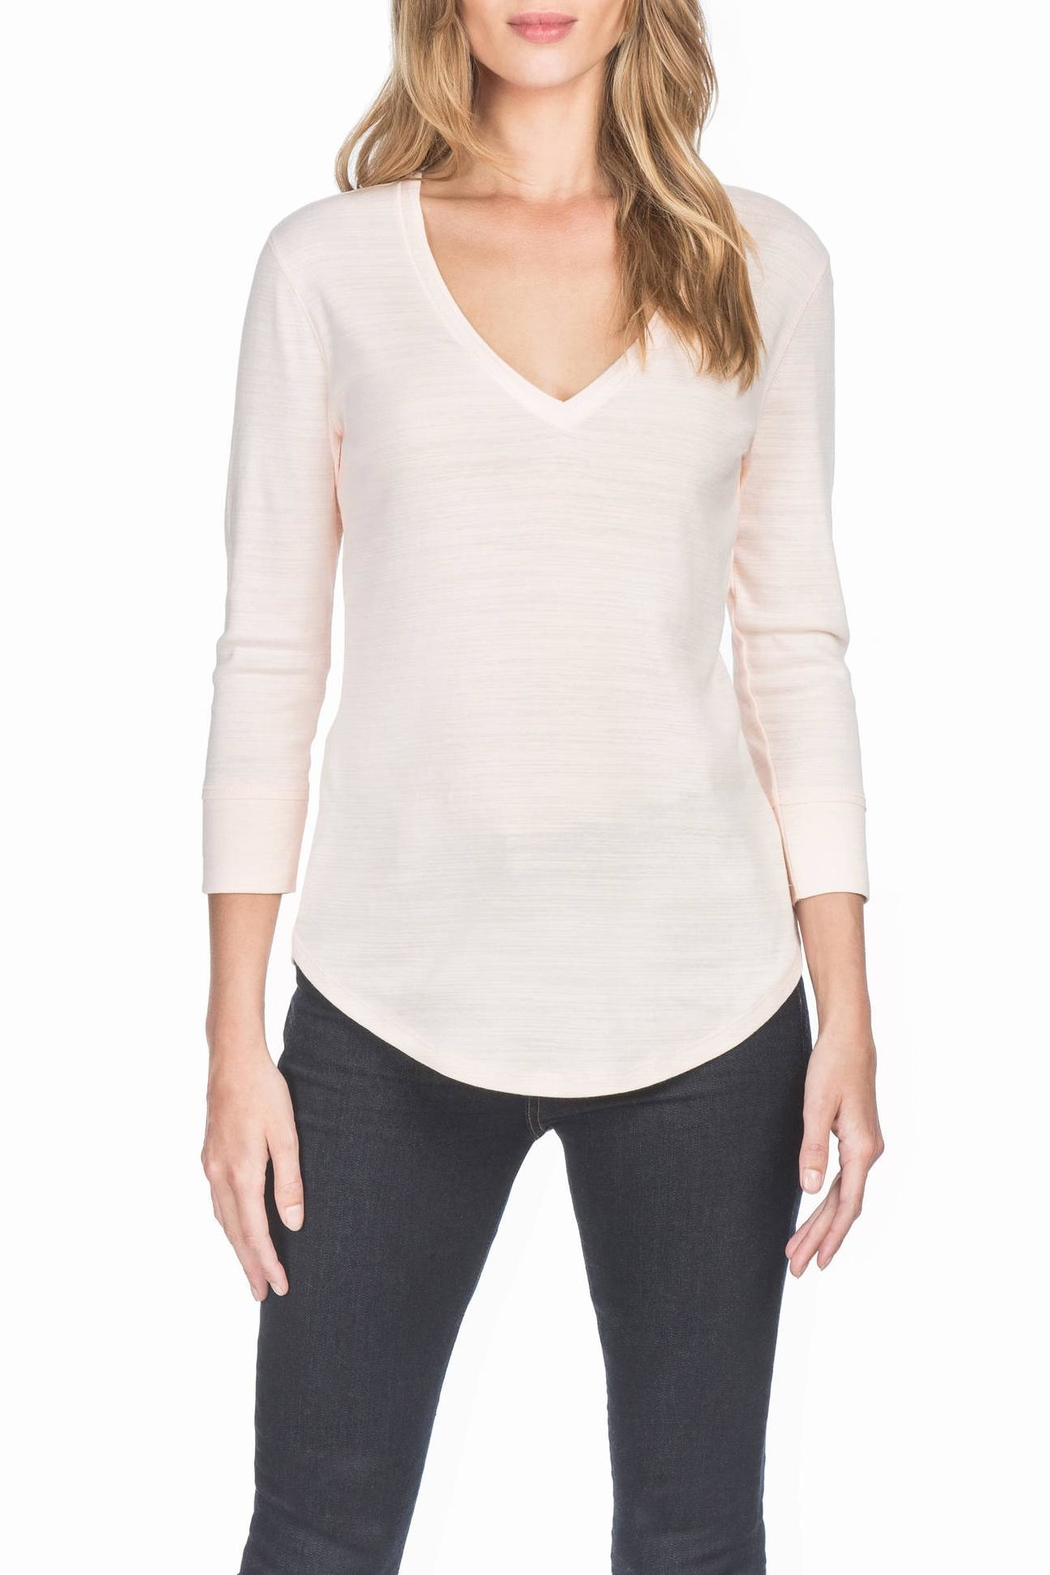 Lilla P 3/4 Sleeve V-Neck - Main Image